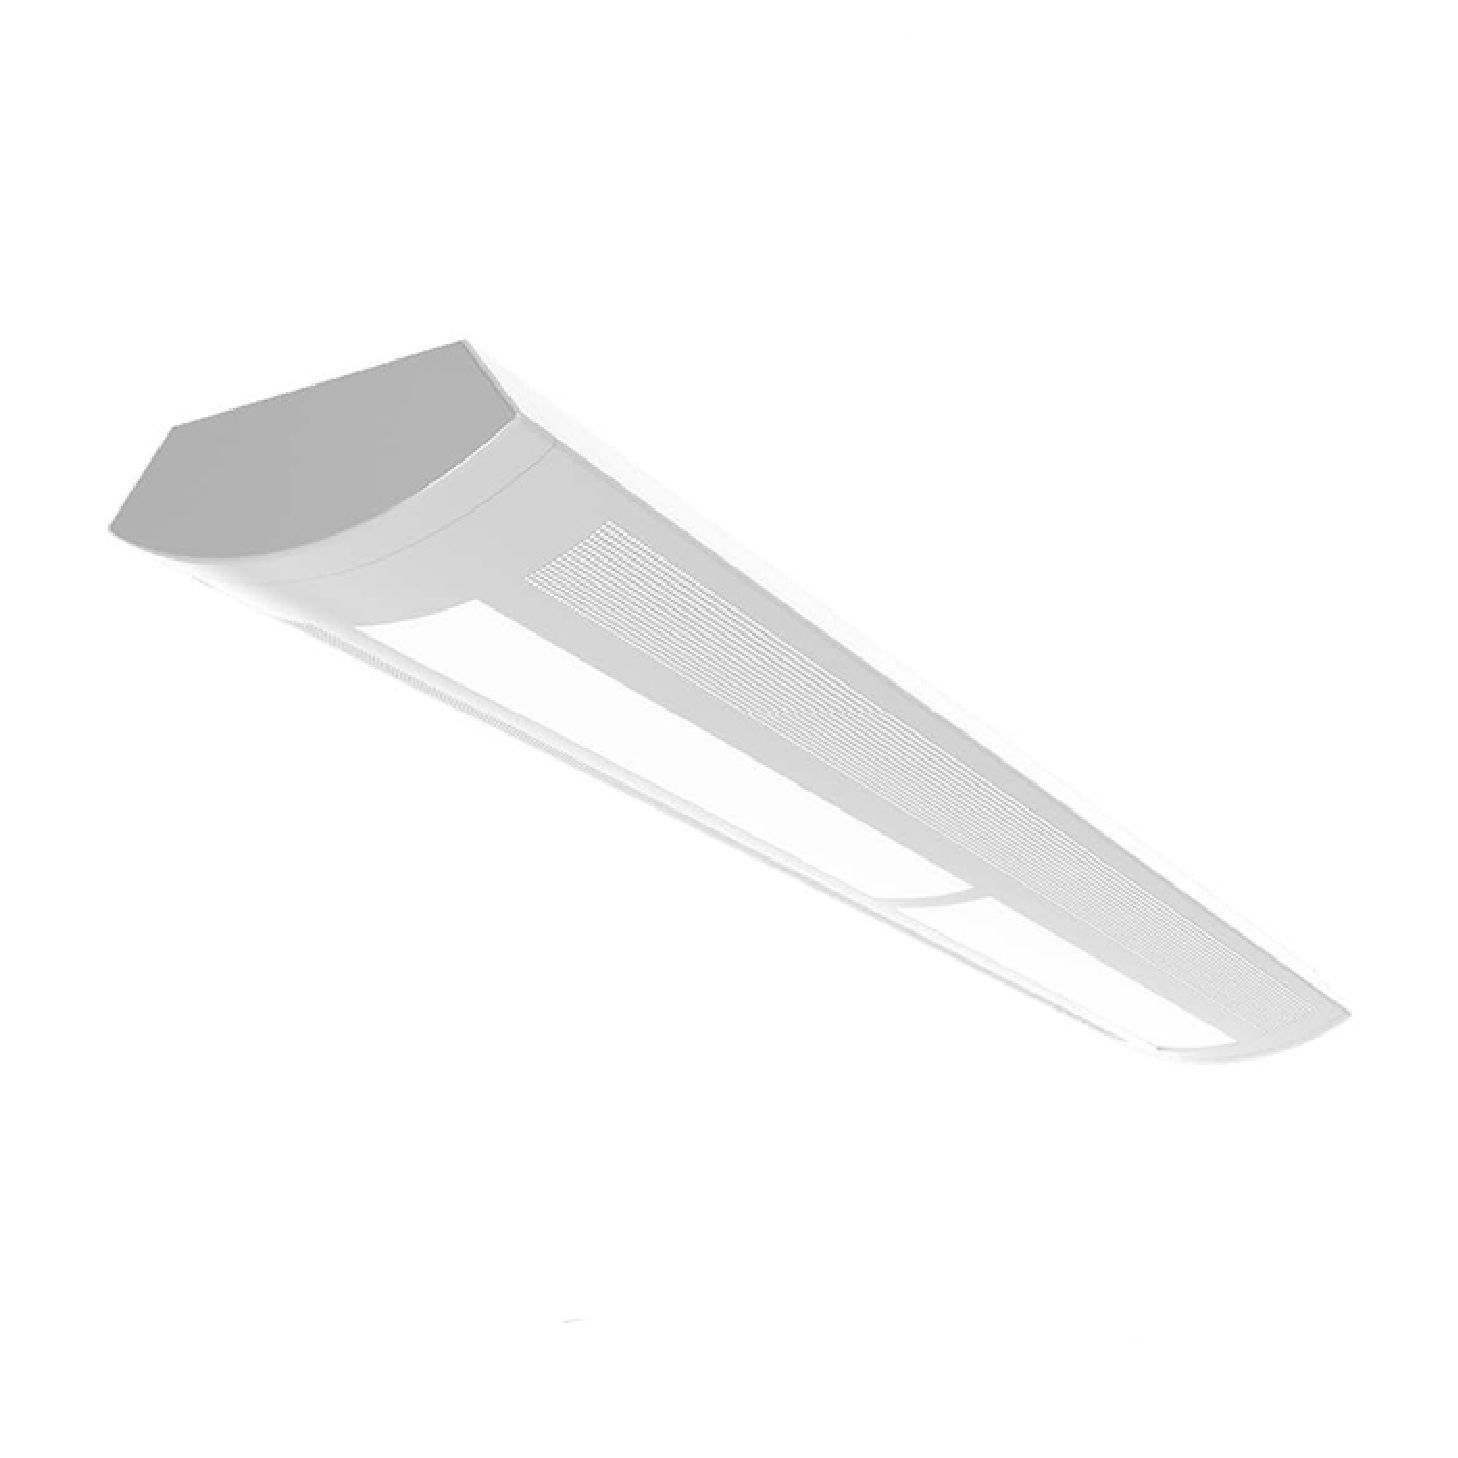 suspended linear lighting. Fine Linear Alcon Lighting 10123 Architectural Suspended Linear Fluorescent Direct   Indirect Office Fixture  T5 Or T5HO Throughout